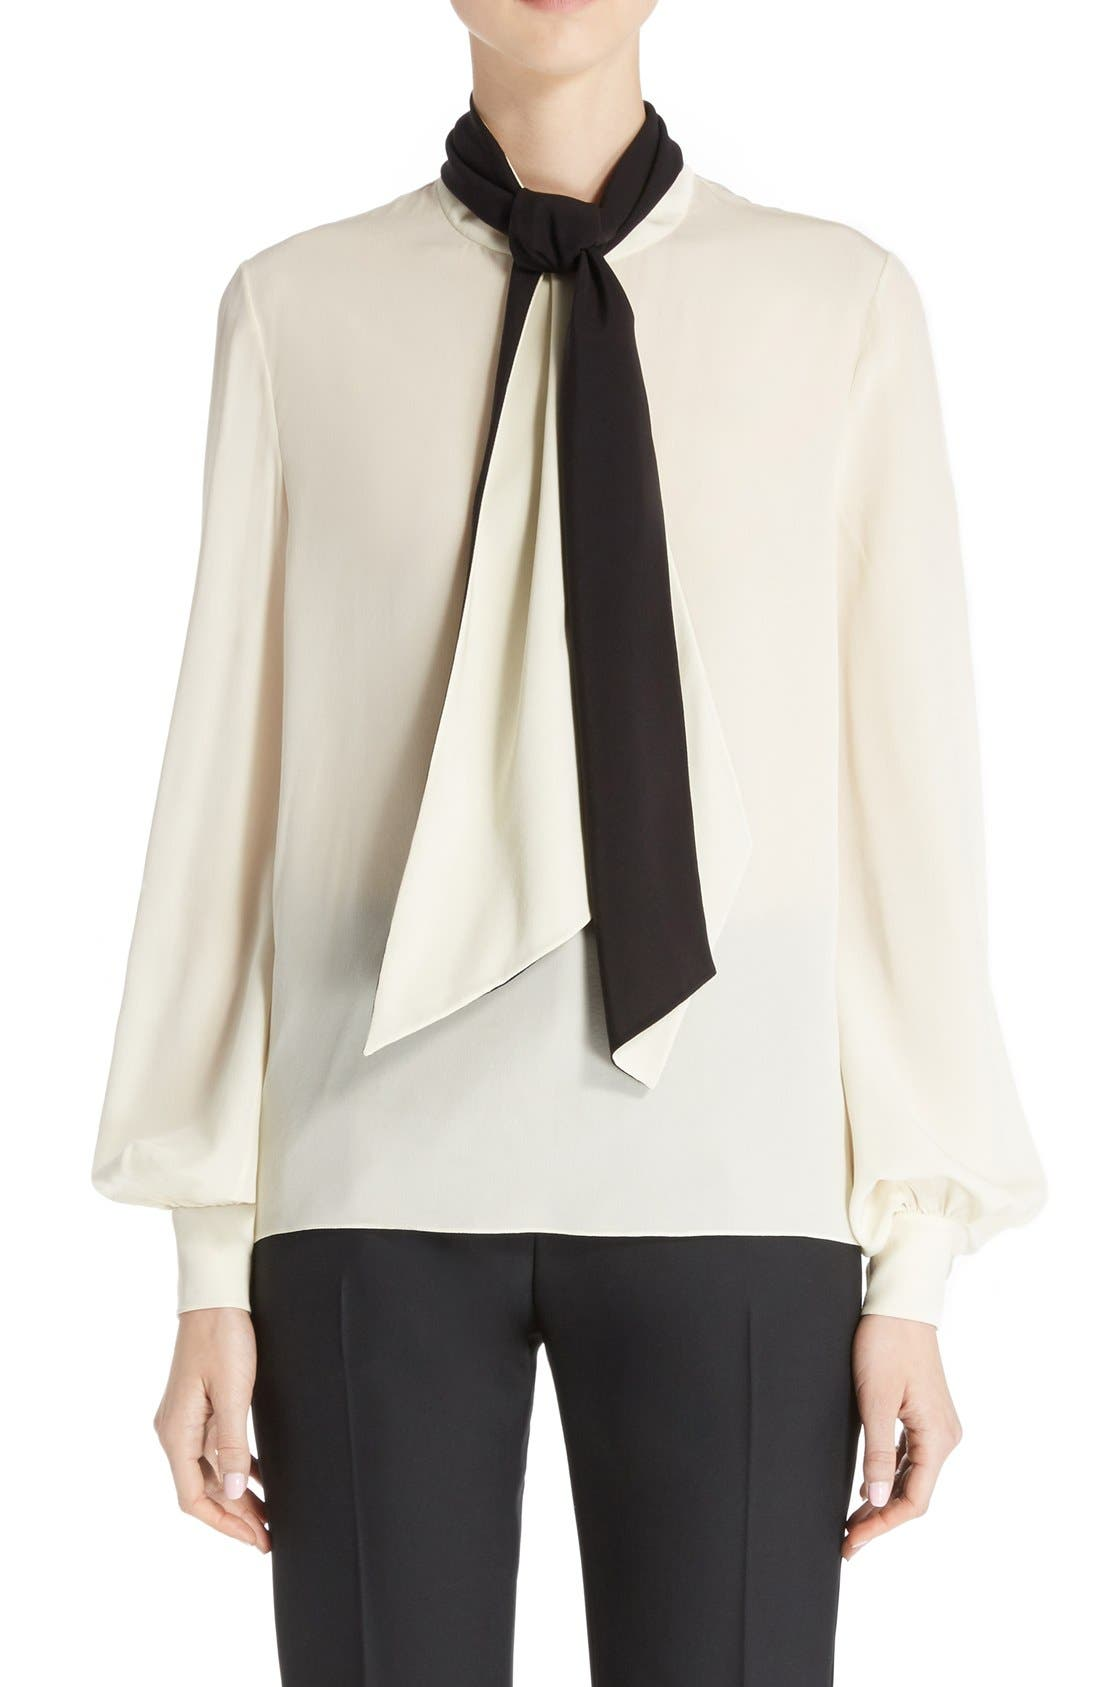 LANVIN Bicolor Crêpe de Chine Blouse with Detachable